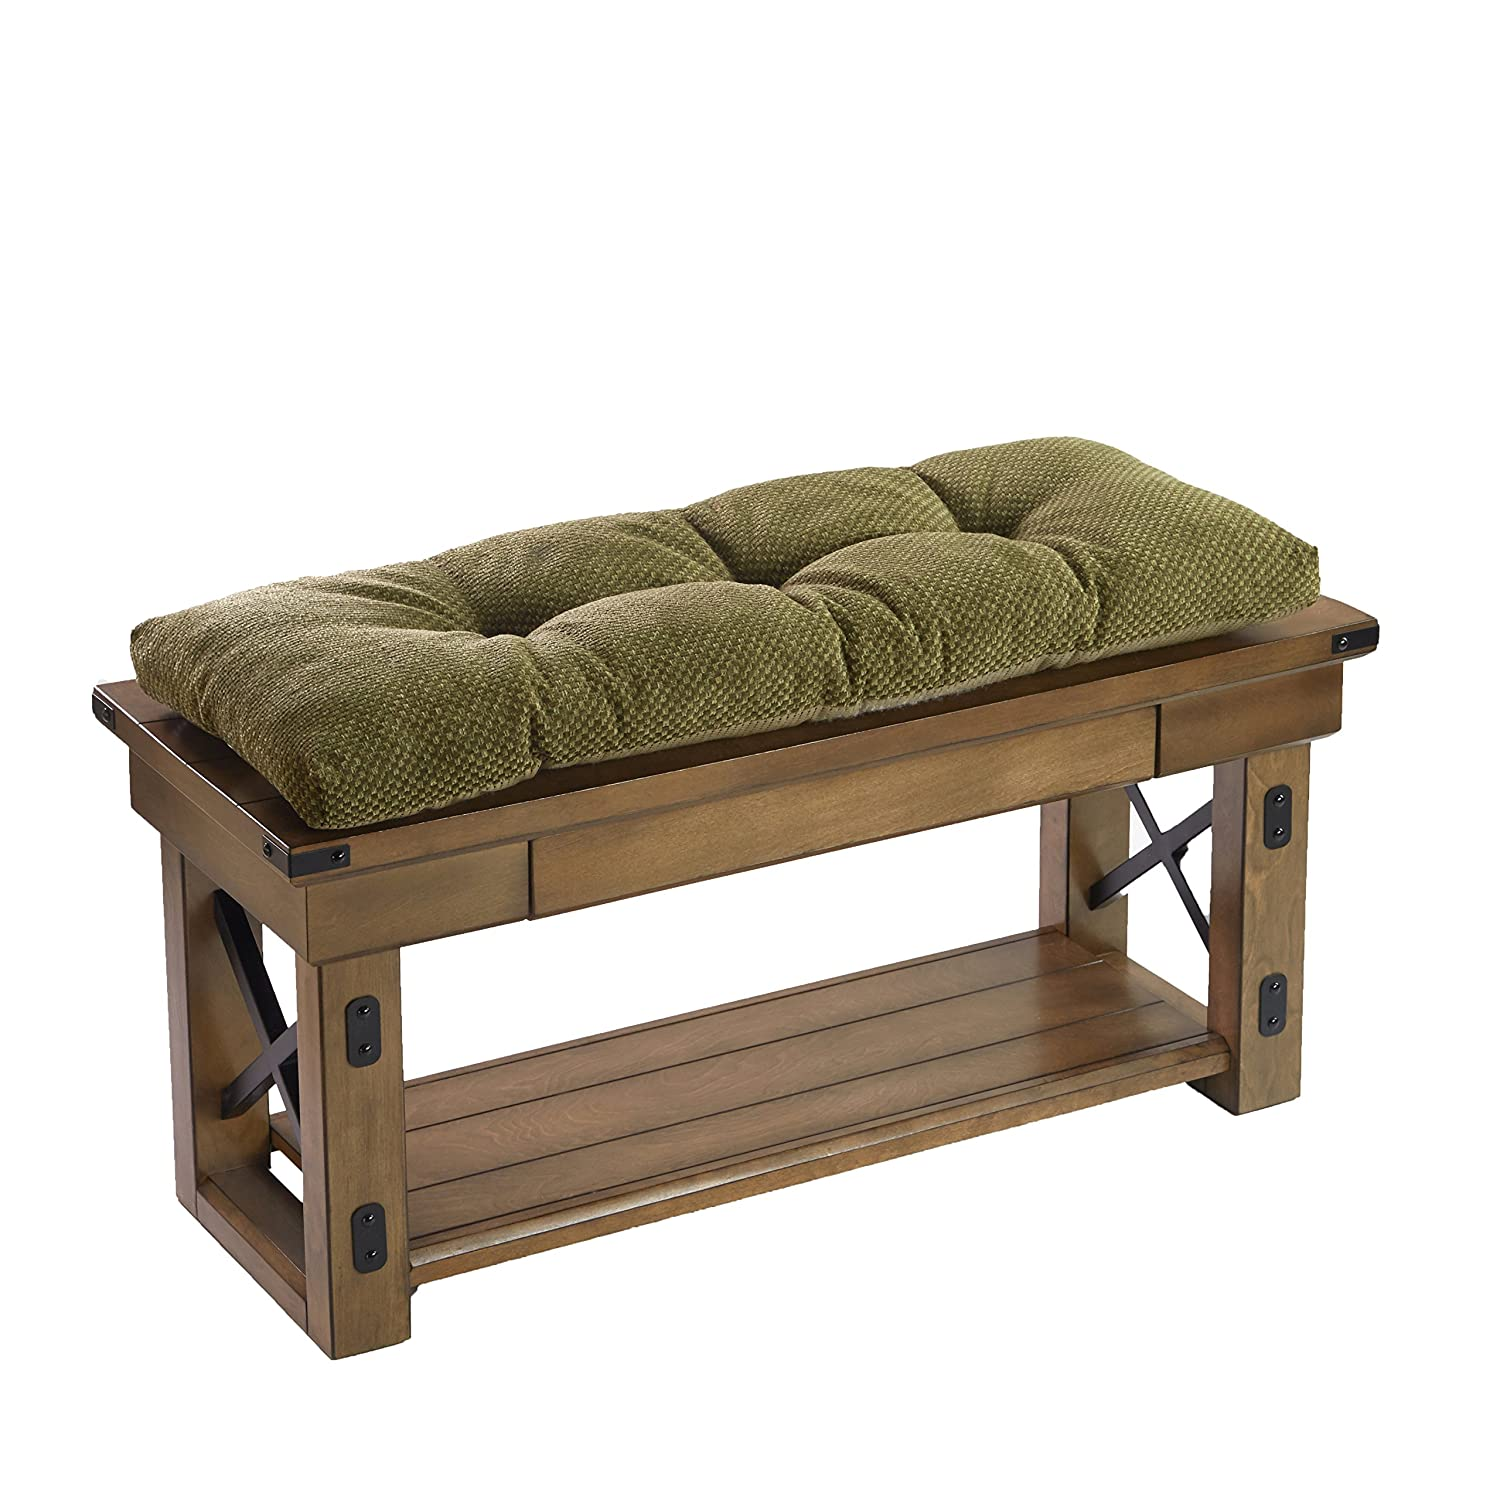 The Gripper Non-Slip Rembrandt Tufted Universal Bench Cushion, Green